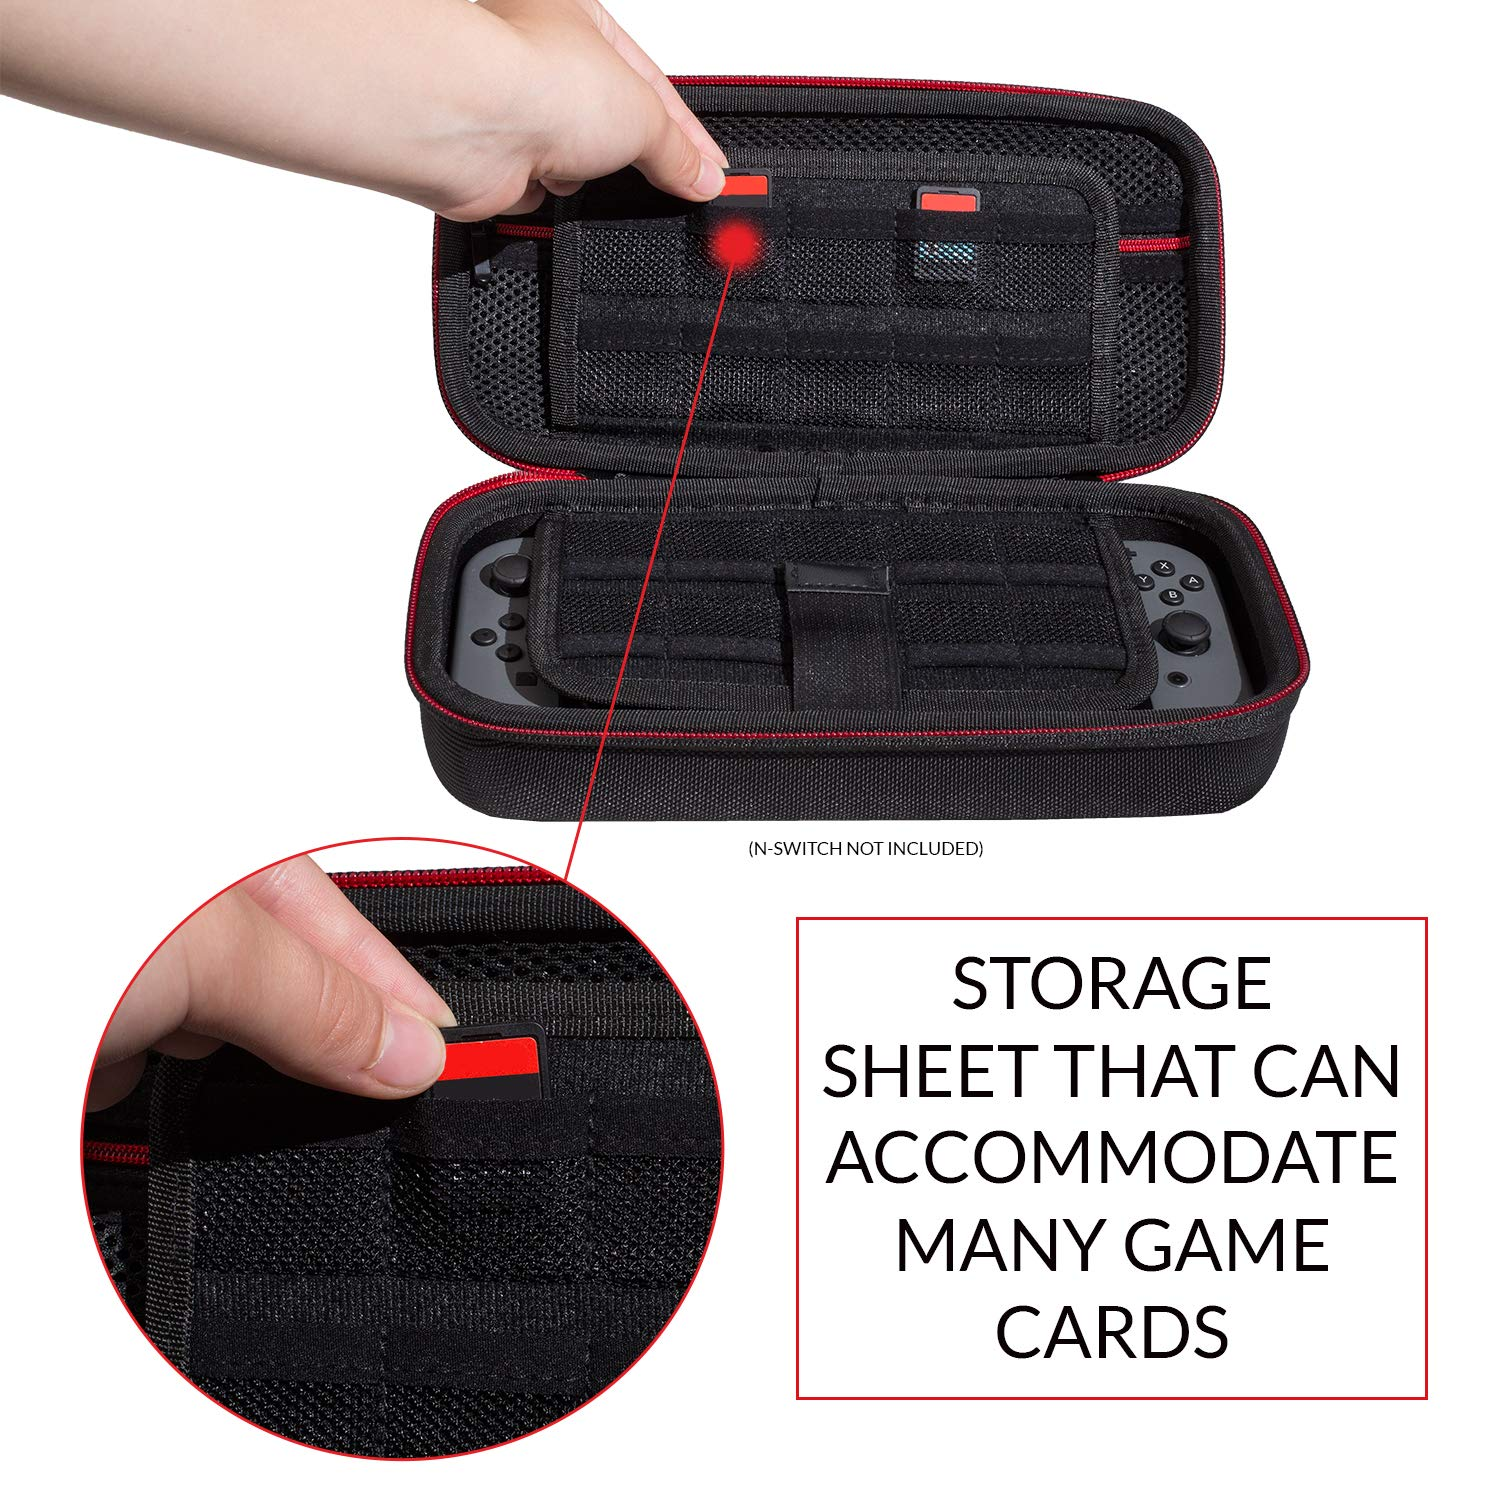 Protective Carrying Case for Nintendo Switch Accessories - Premium Quality Hard Cases Travel Protective Game Cover Carry Bag by EVORETRO